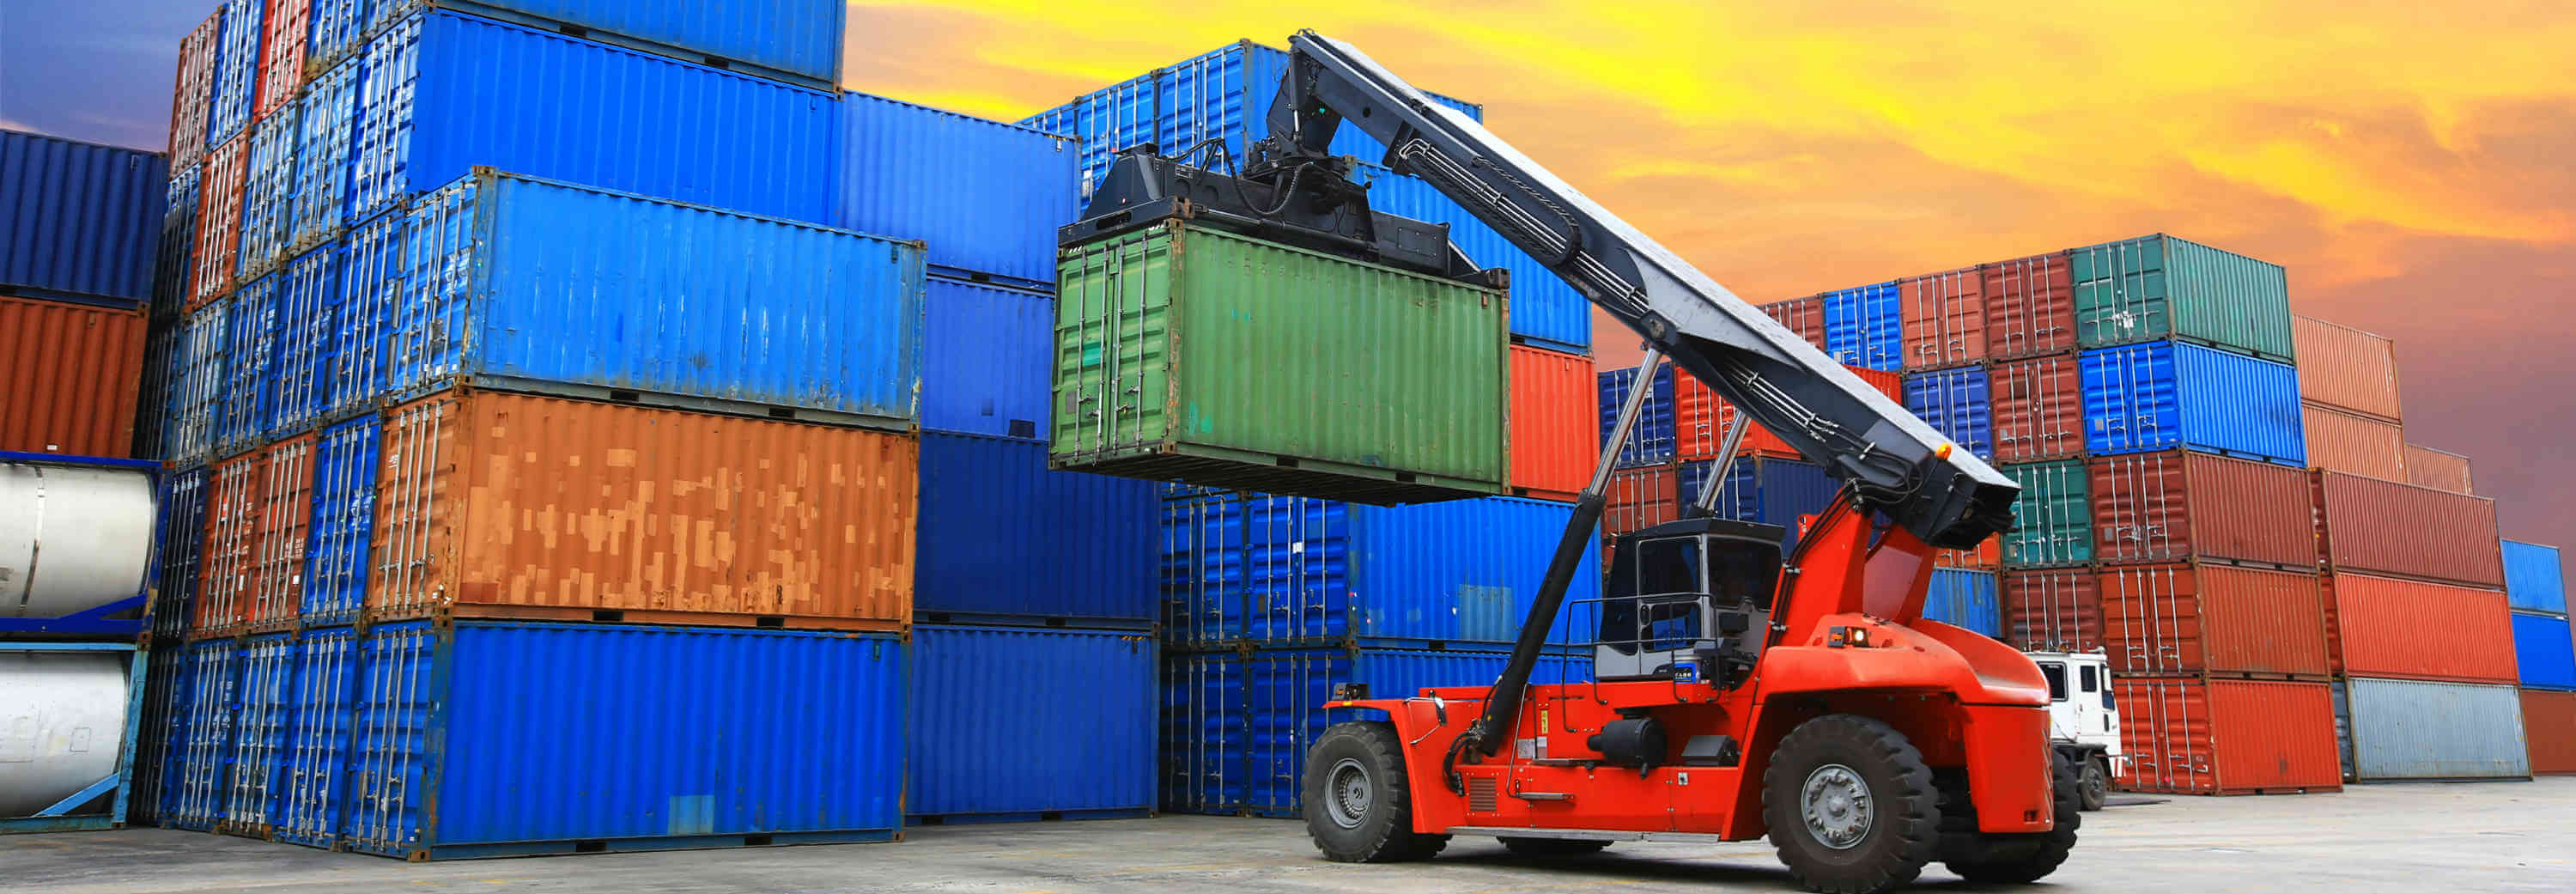 intermodal container lifted on top of other containers